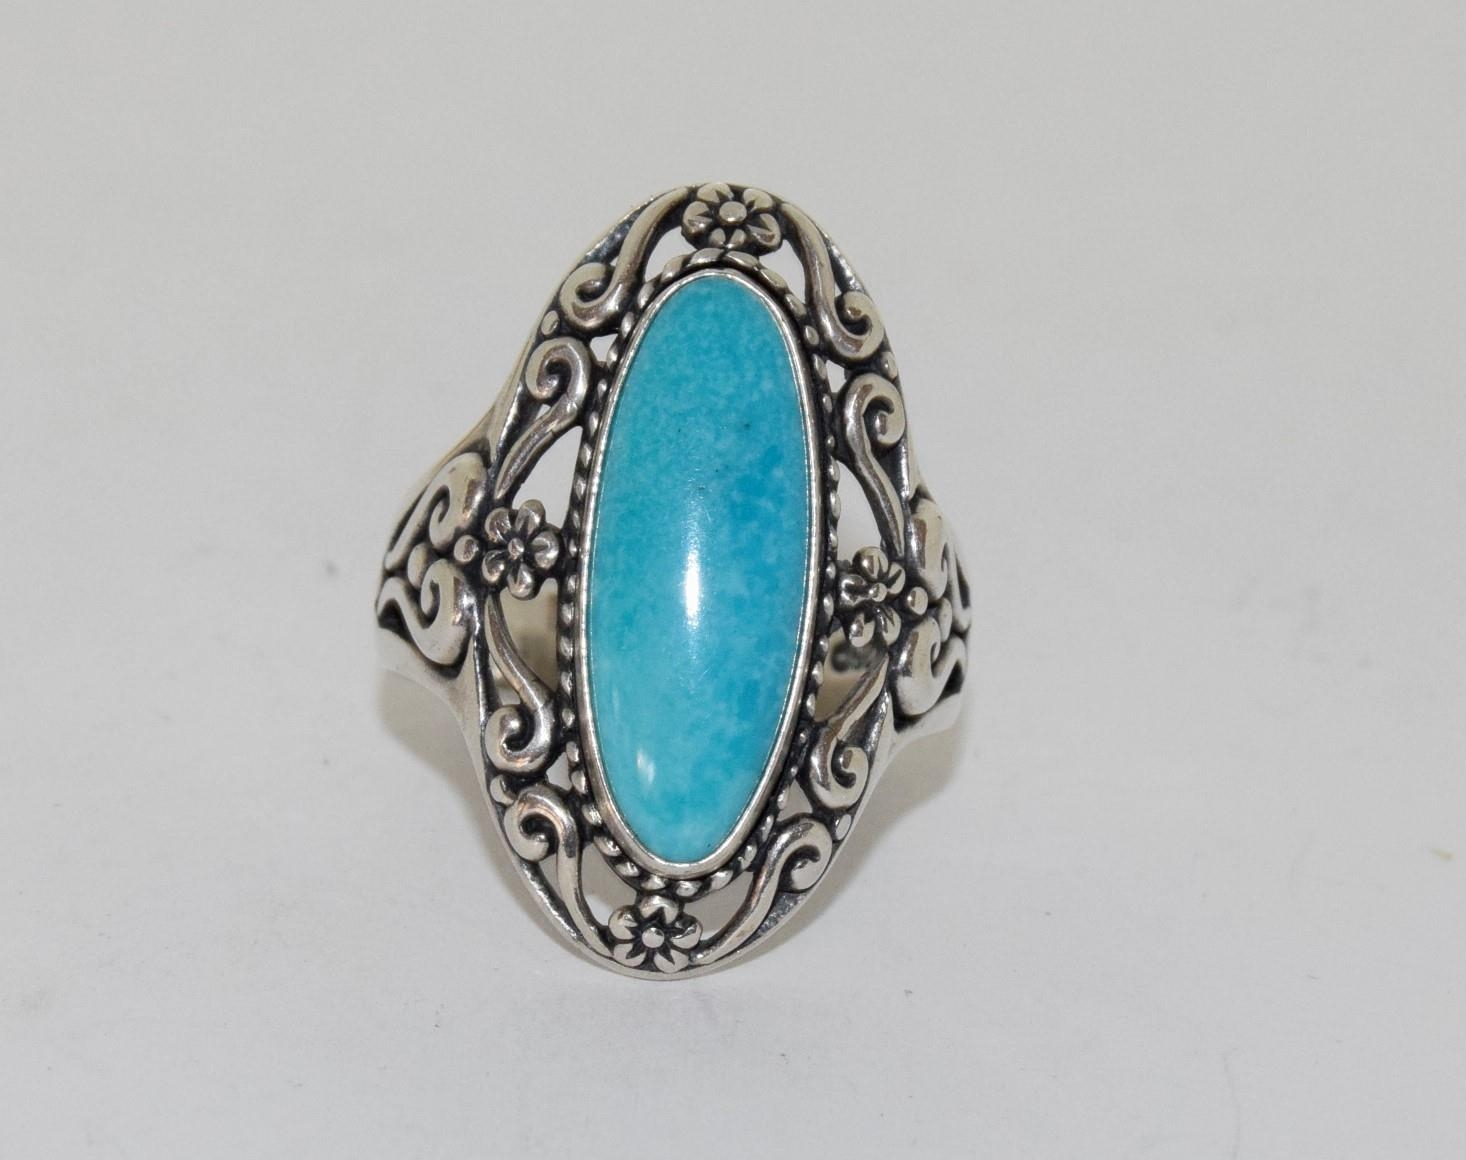 A light blue fully hallmarked silver ring, Size T